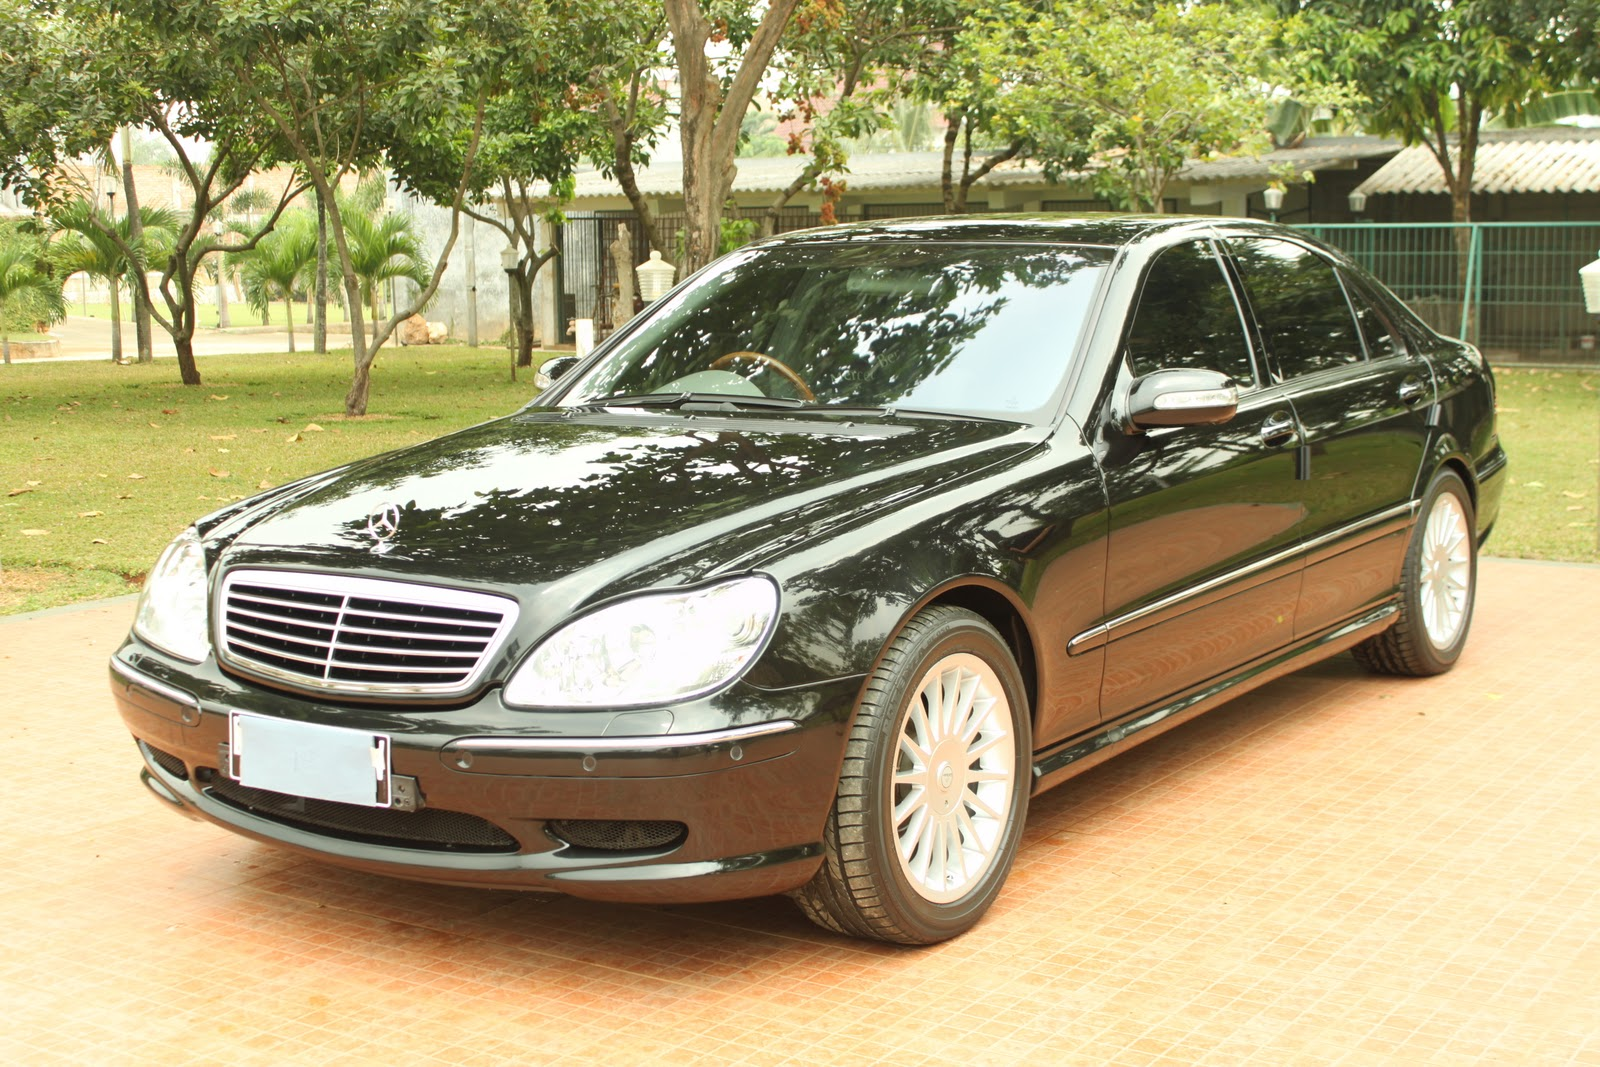 Mercedes benz s55 amg 2005 ikemada car rental for Mercedes benz s55